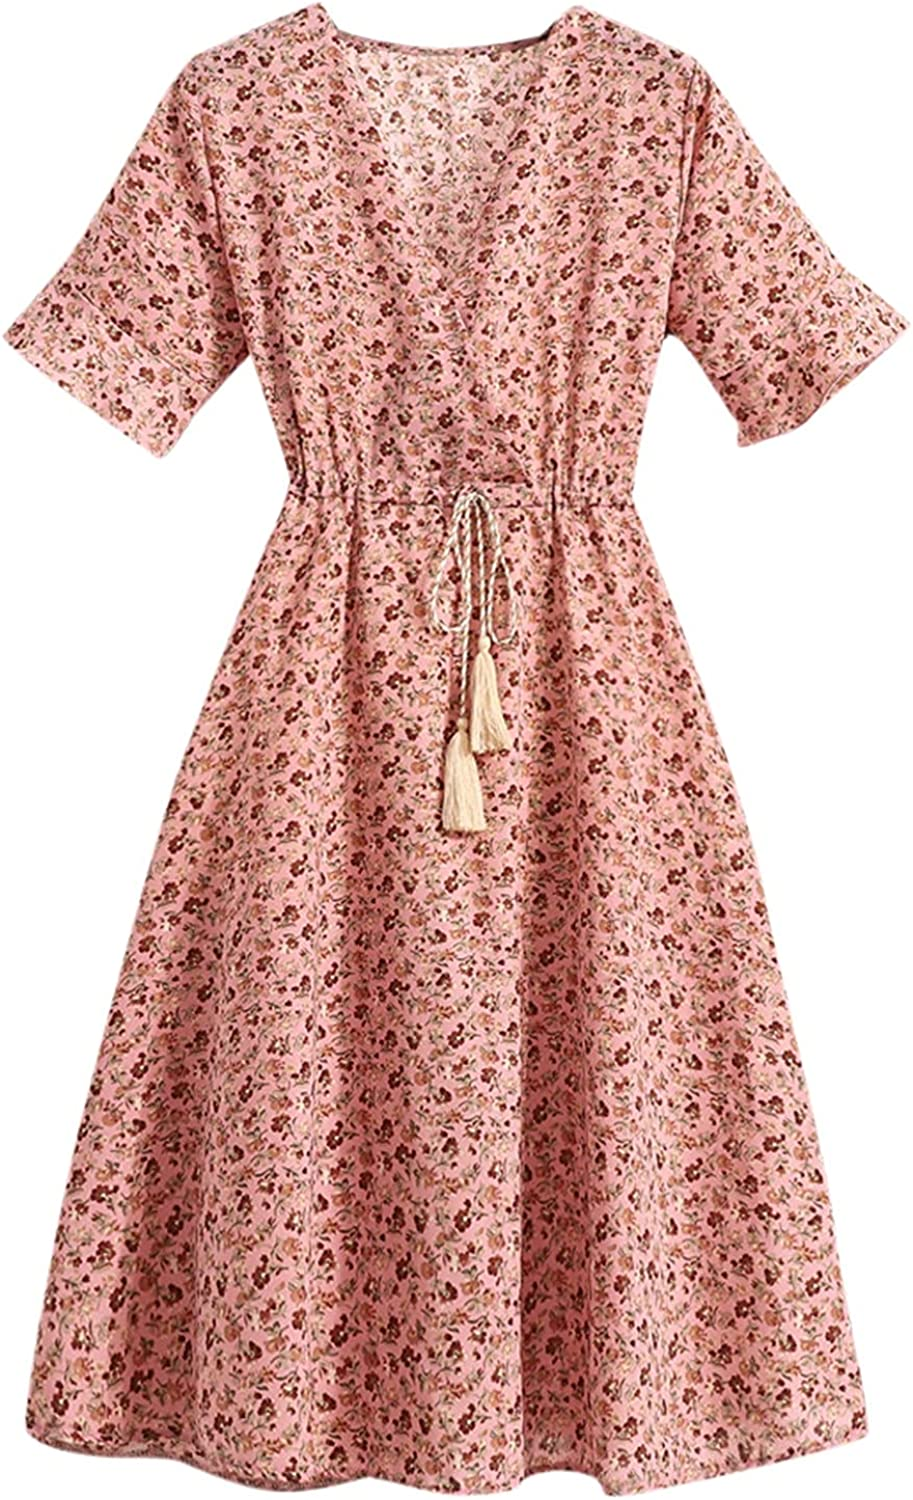 Sayhi Summer Dress for Women V-Neck Up Sale SALE% OFF French Lace Print Floral Limited time cheap sale